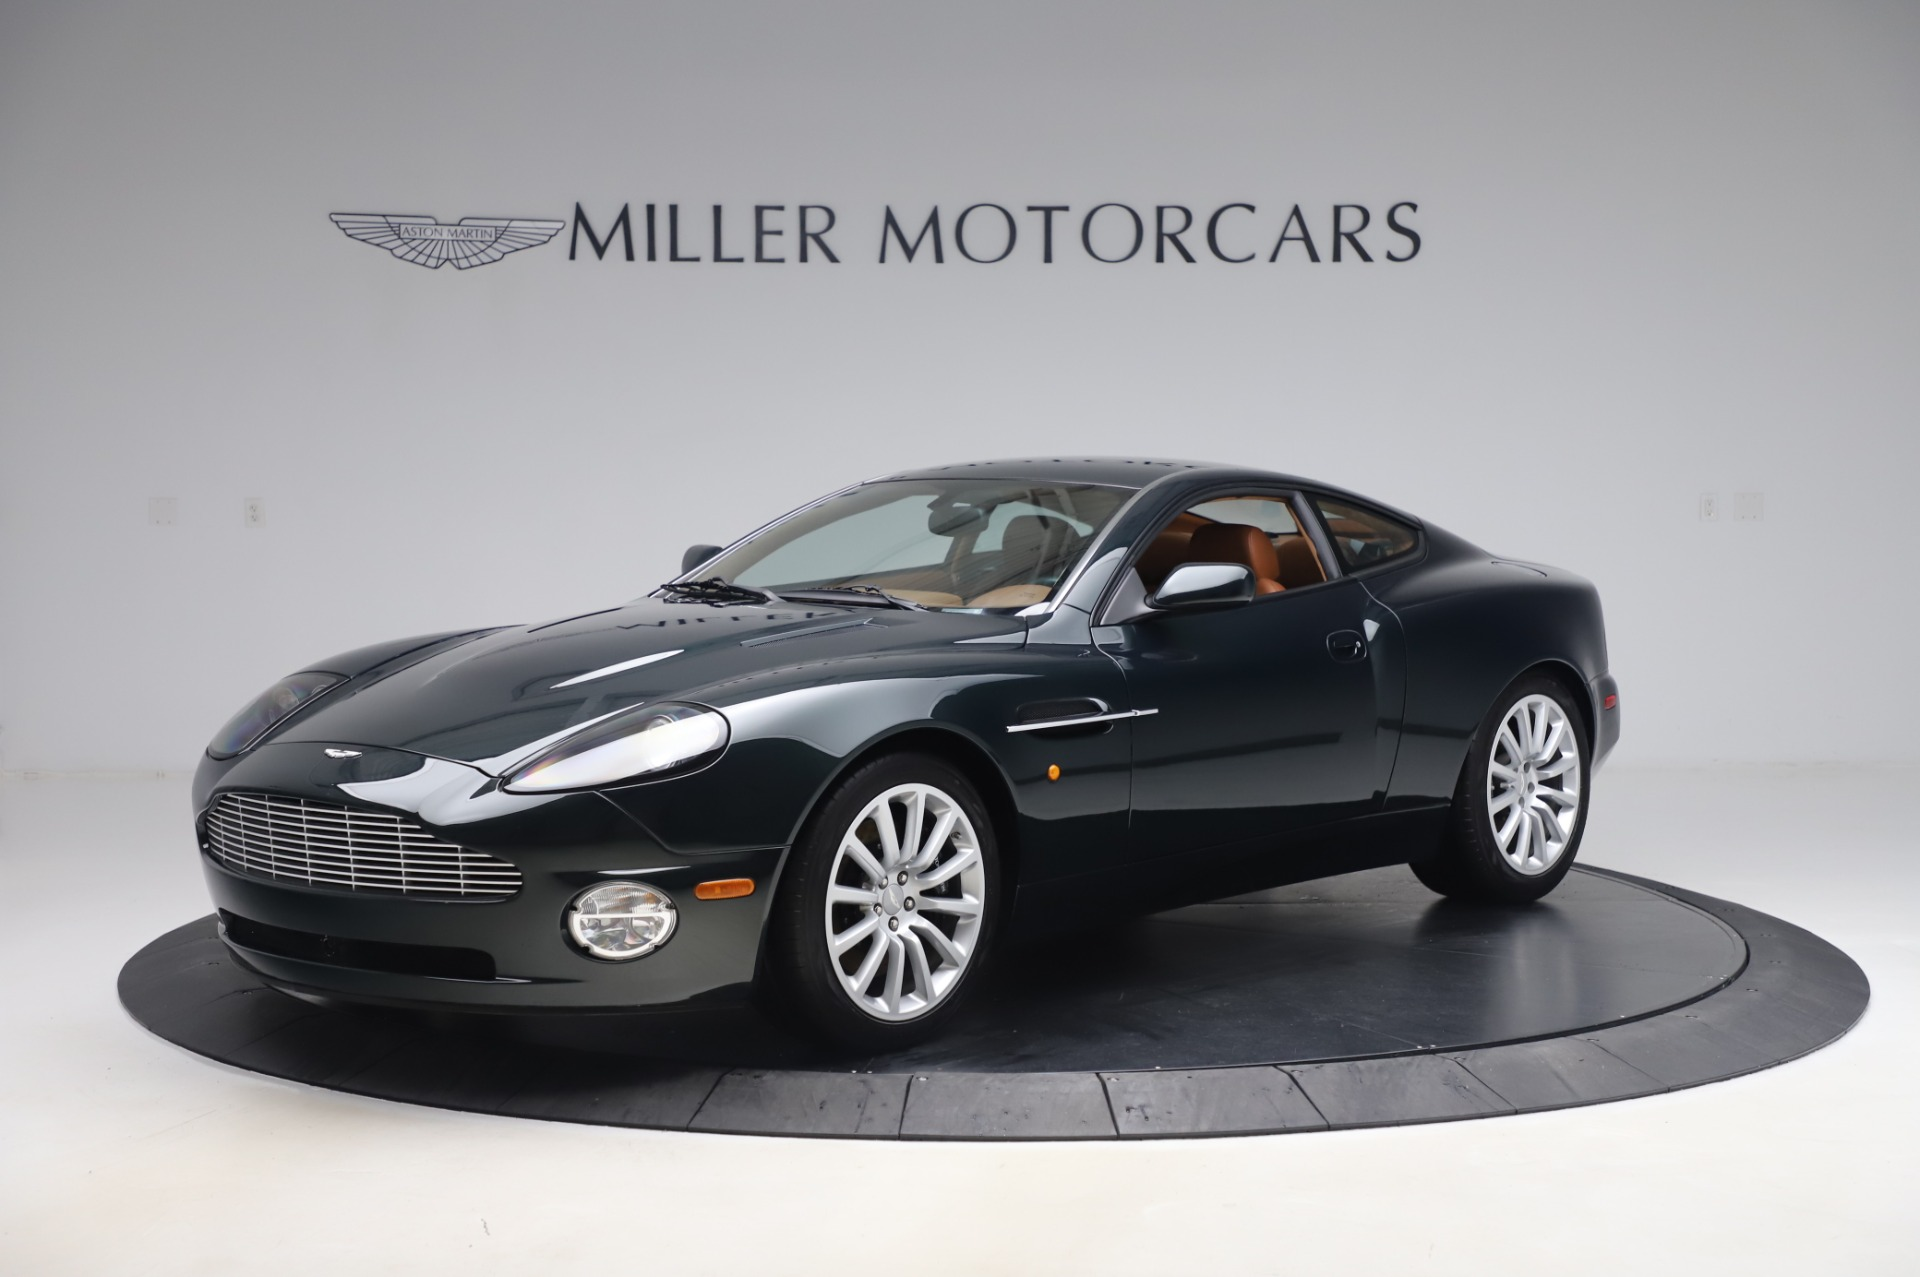 Used 2003 Aston Martin V12 Vanquish Coupe for sale $79,900 at Pagani of Greenwich in Greenwich CT 06830 1